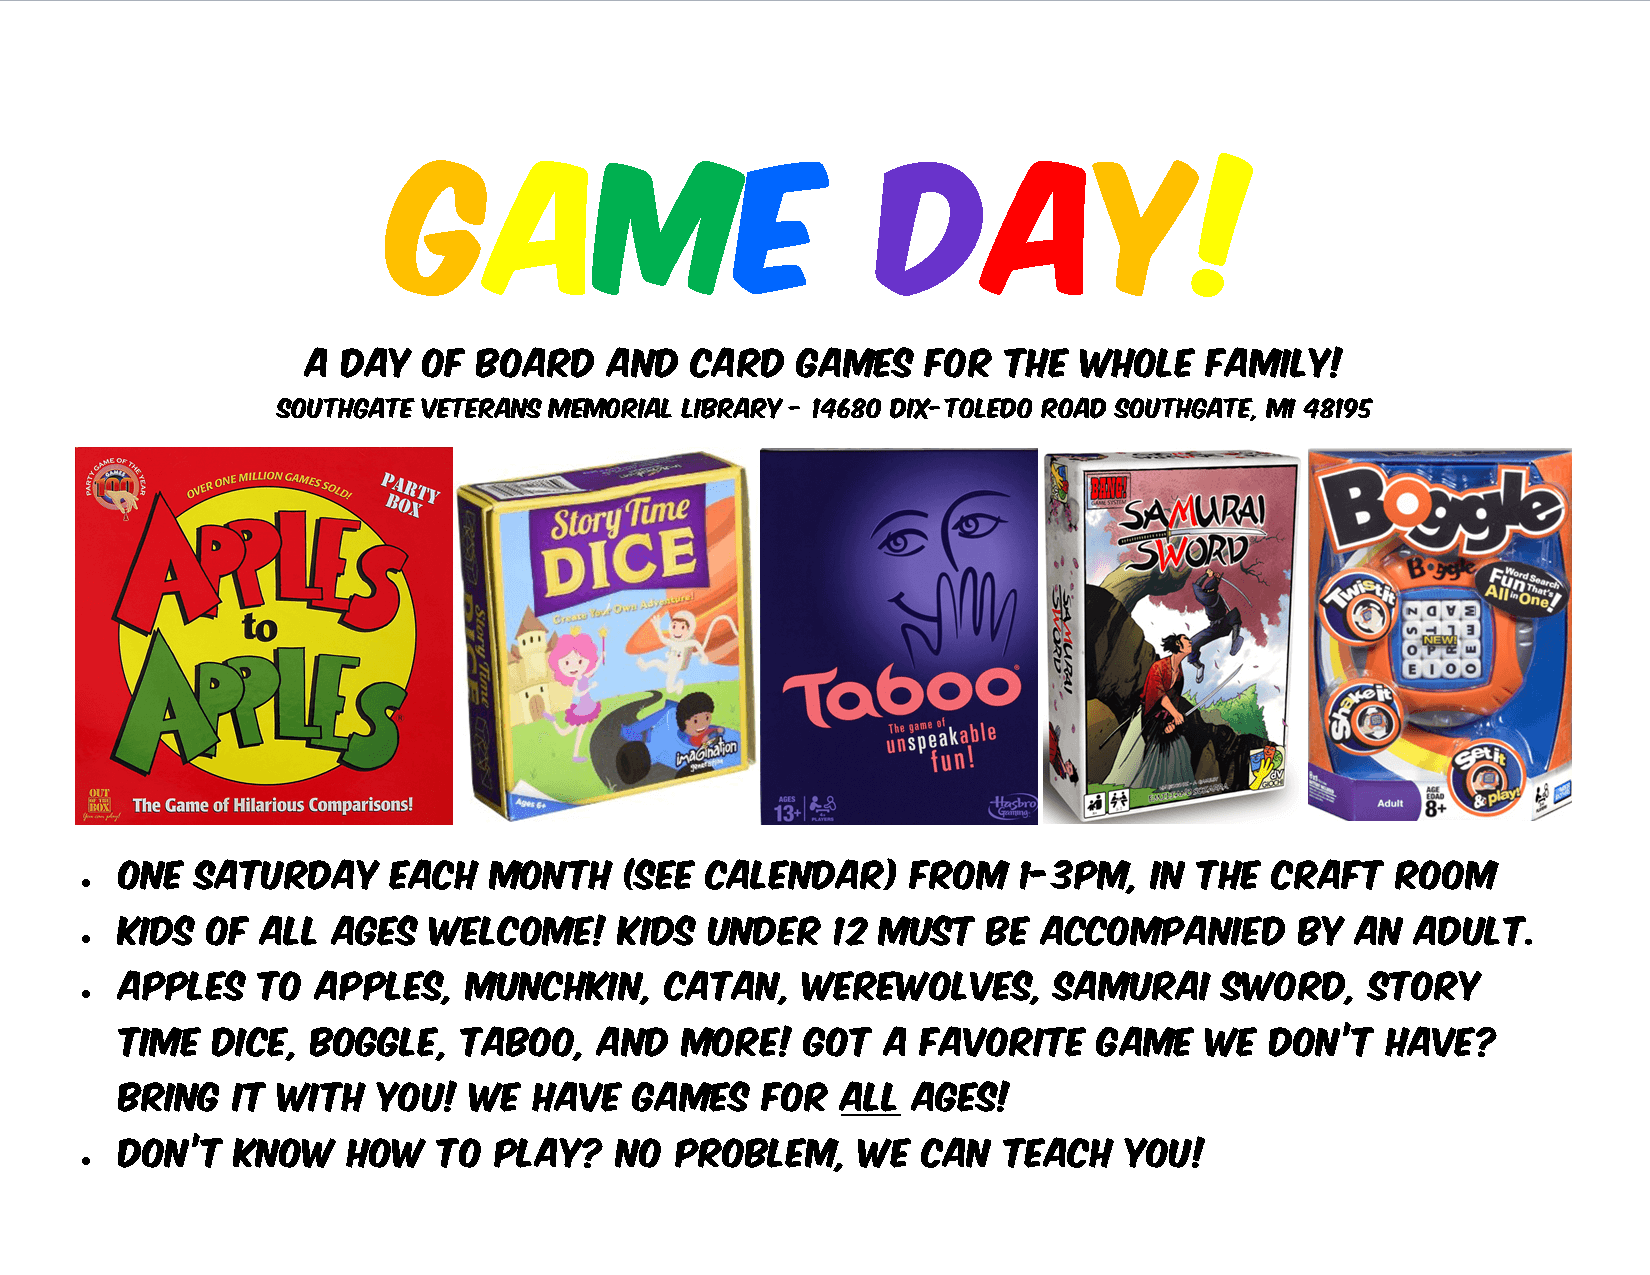 A poster explaining Game Days with images of several board games. The text reads: One Saturday each month (see calendar) from 1-3Pm, in the craft room. Kids of all ages welcome! kids under 12 must be accompanied by an adult. Apples to apples, Munchkin, Catan, Werewolves, Samurai Sword, Story Time Dice, Boggle, Taboo, and more! Got a favorite game we don't have? Bring it with you! We have games for all ages! Don't know how to play? No problem, we can teach you!